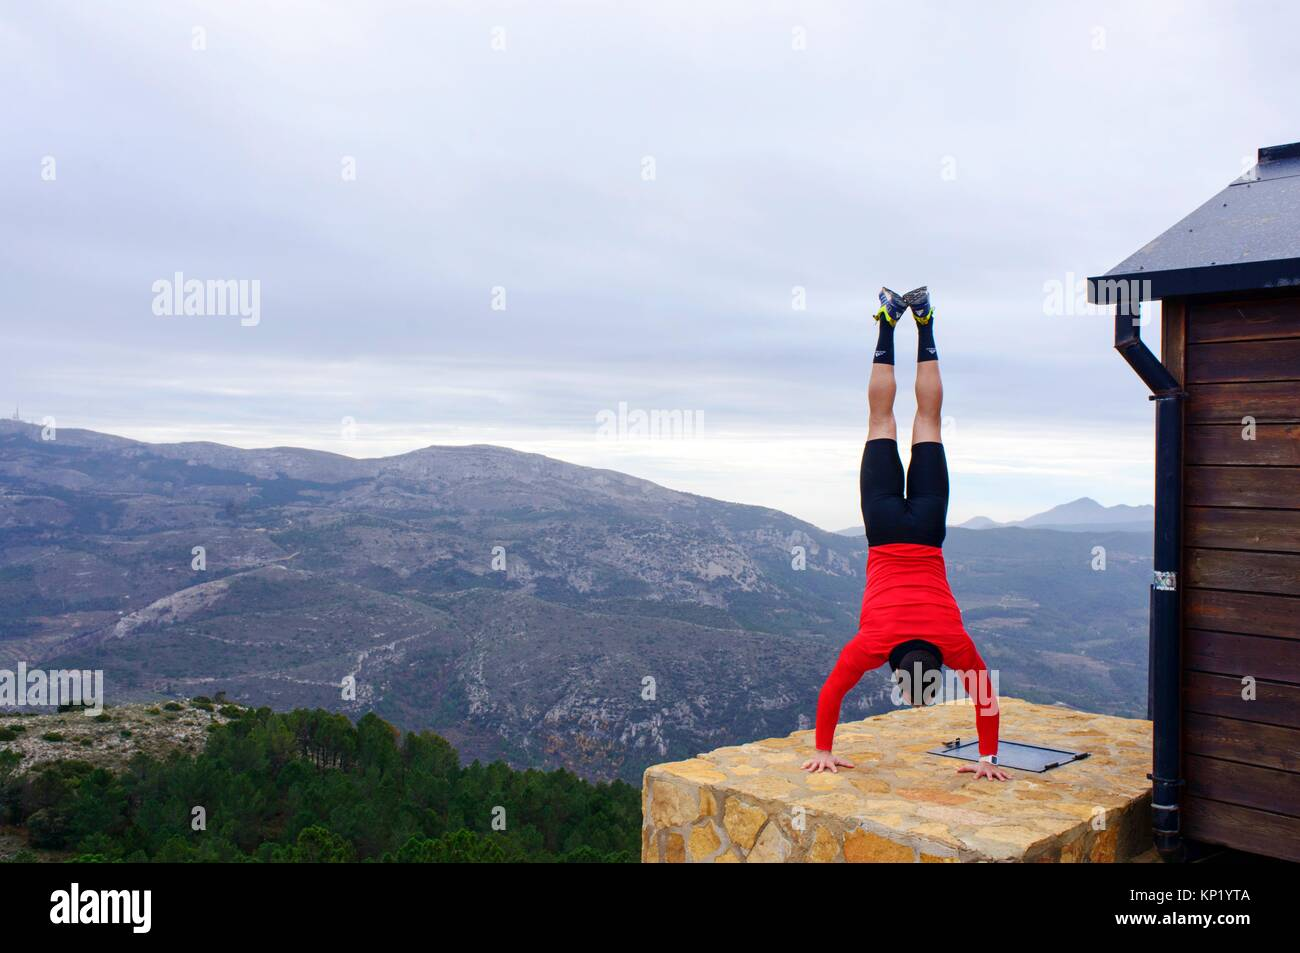 Sportswoman doing handstands in the mountains of Quatretondeta, Alicante, Valencia, Spain - Stock Image